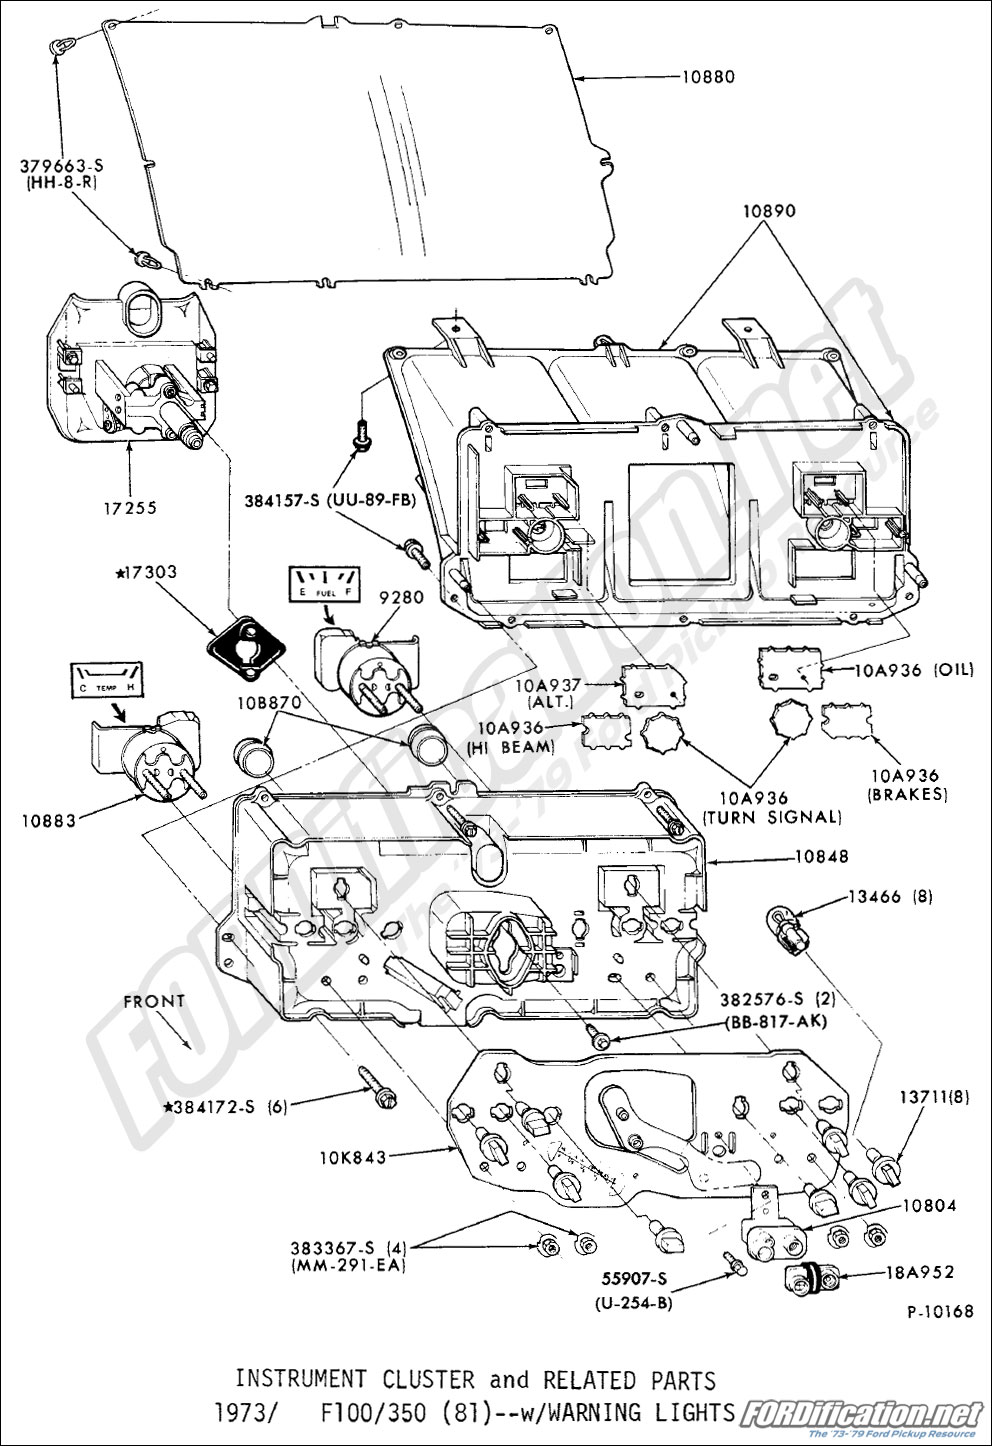 1965 ford f 100 instrument panel wiring schematic wiring diagram rh agarwalexports co